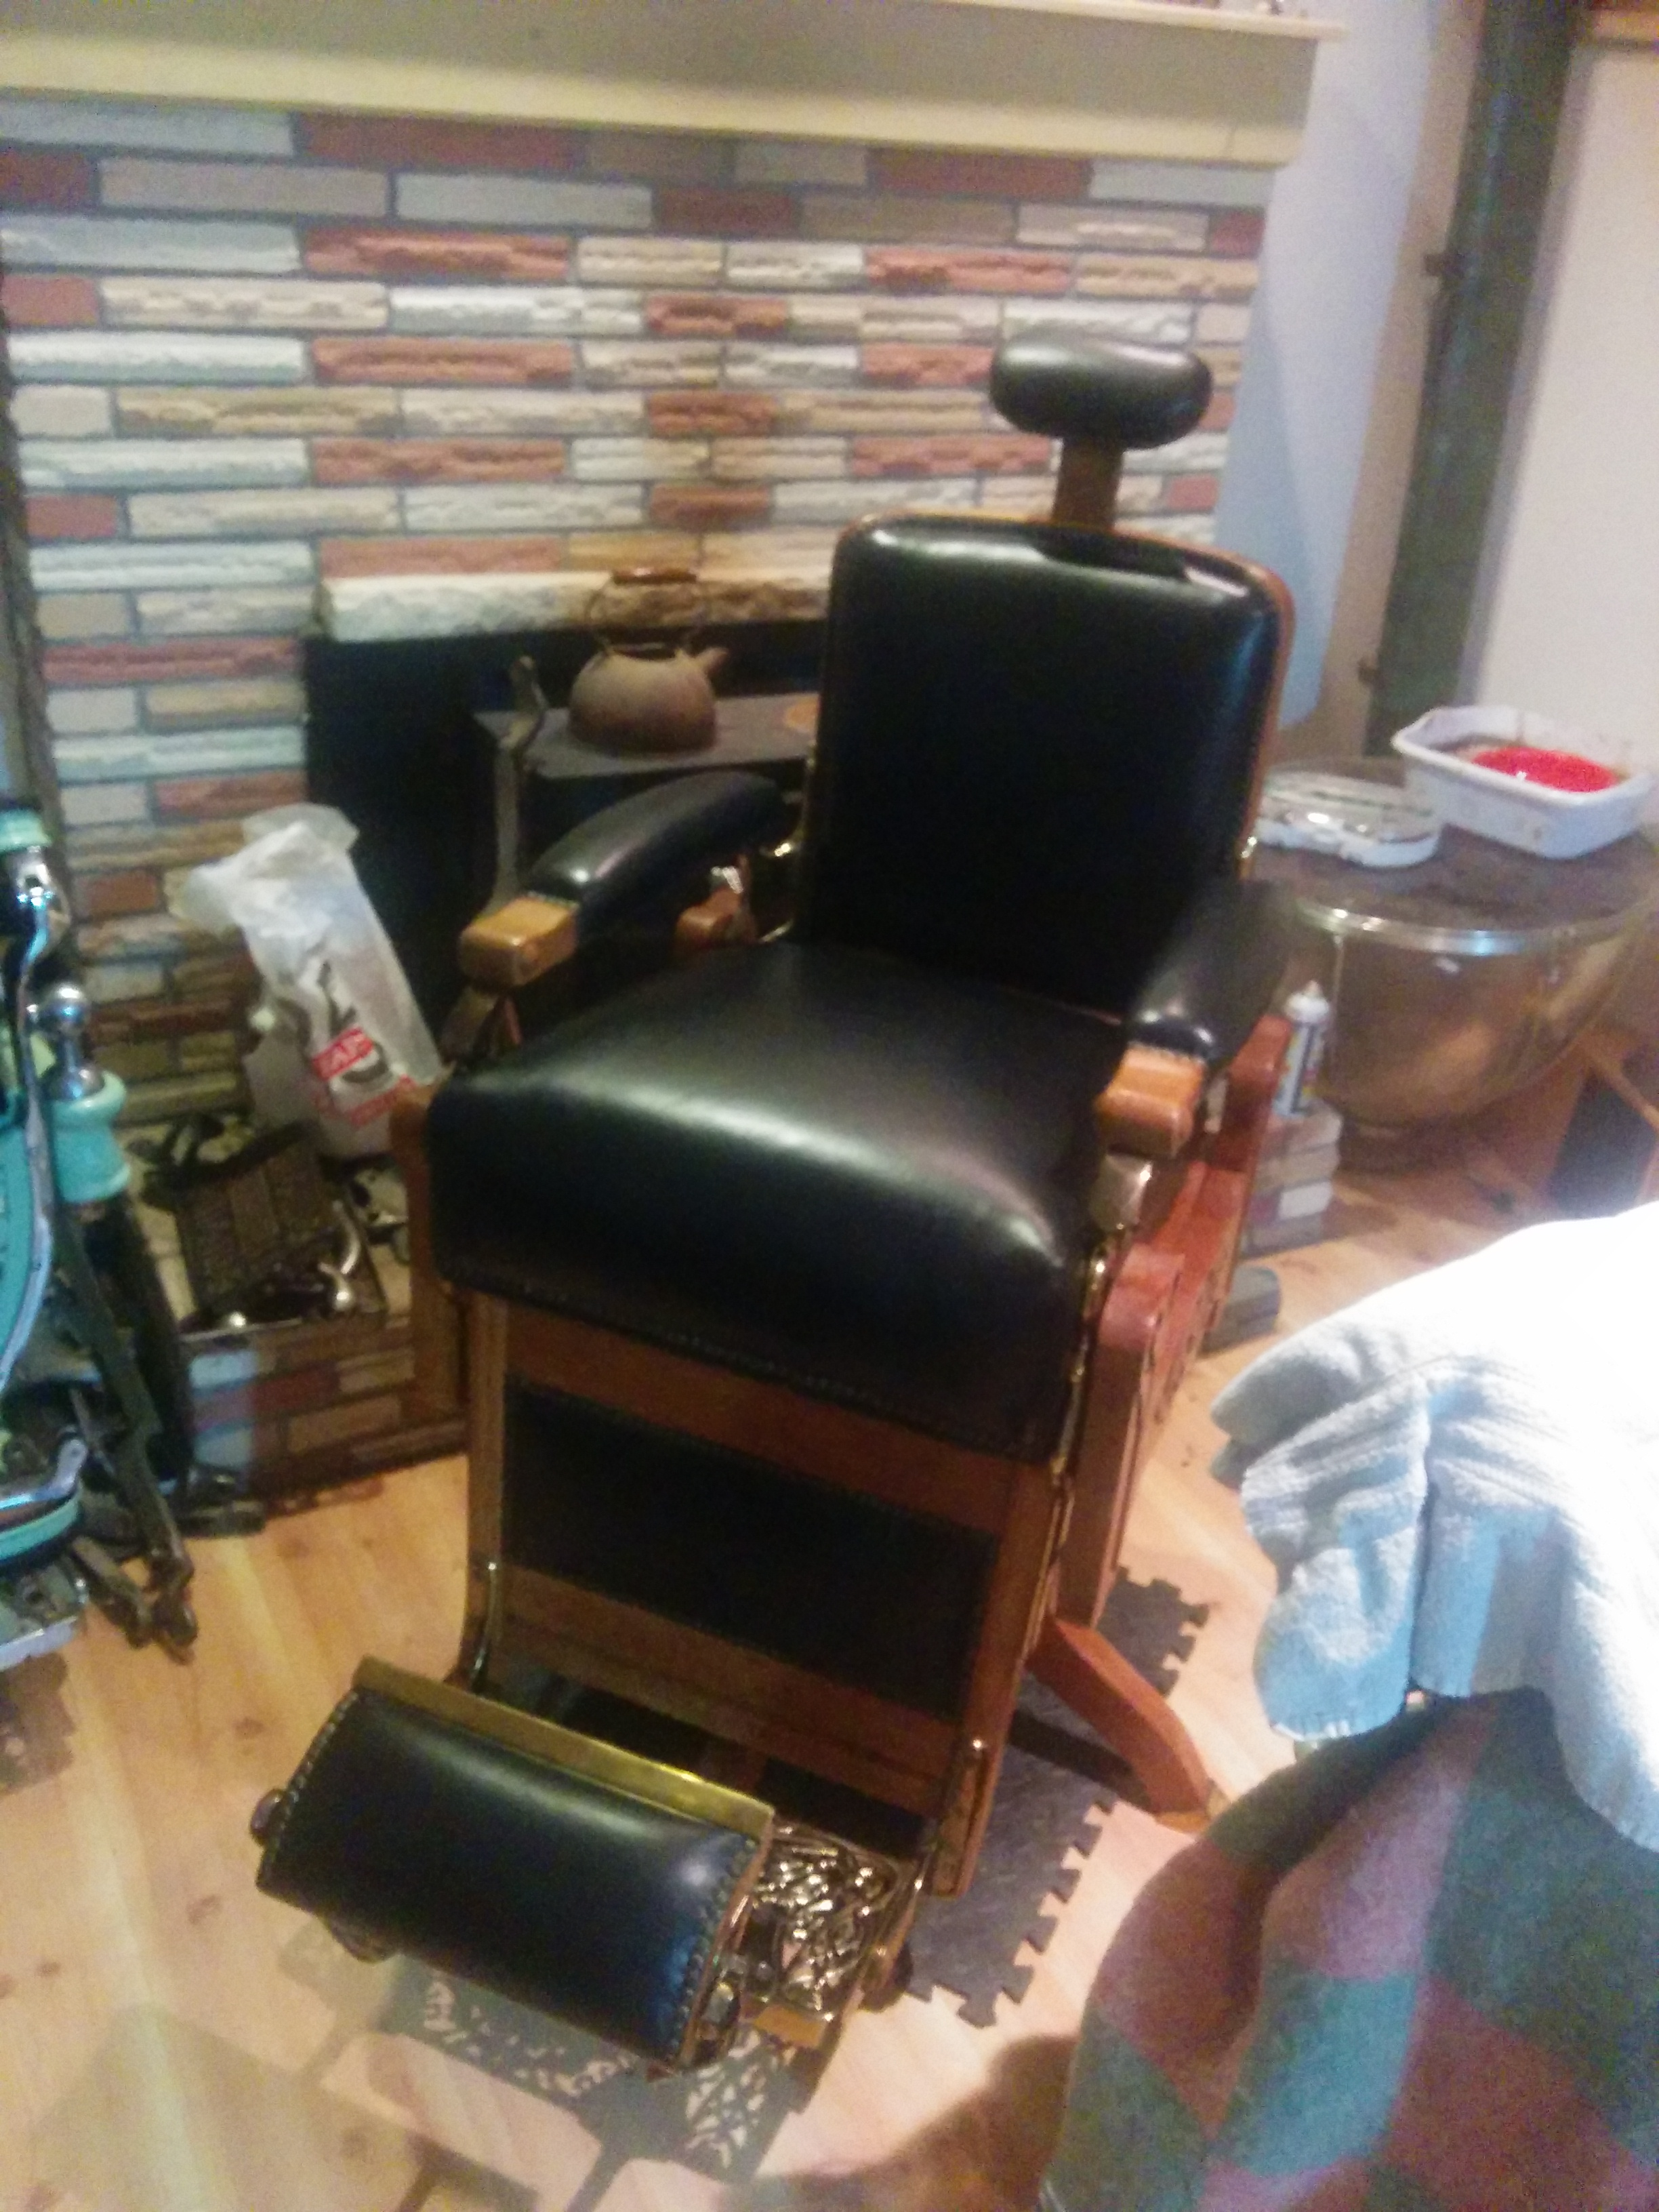 styles and will antique chair furniture marvelous koken table fixed for an ideas barber restoration add supply popular